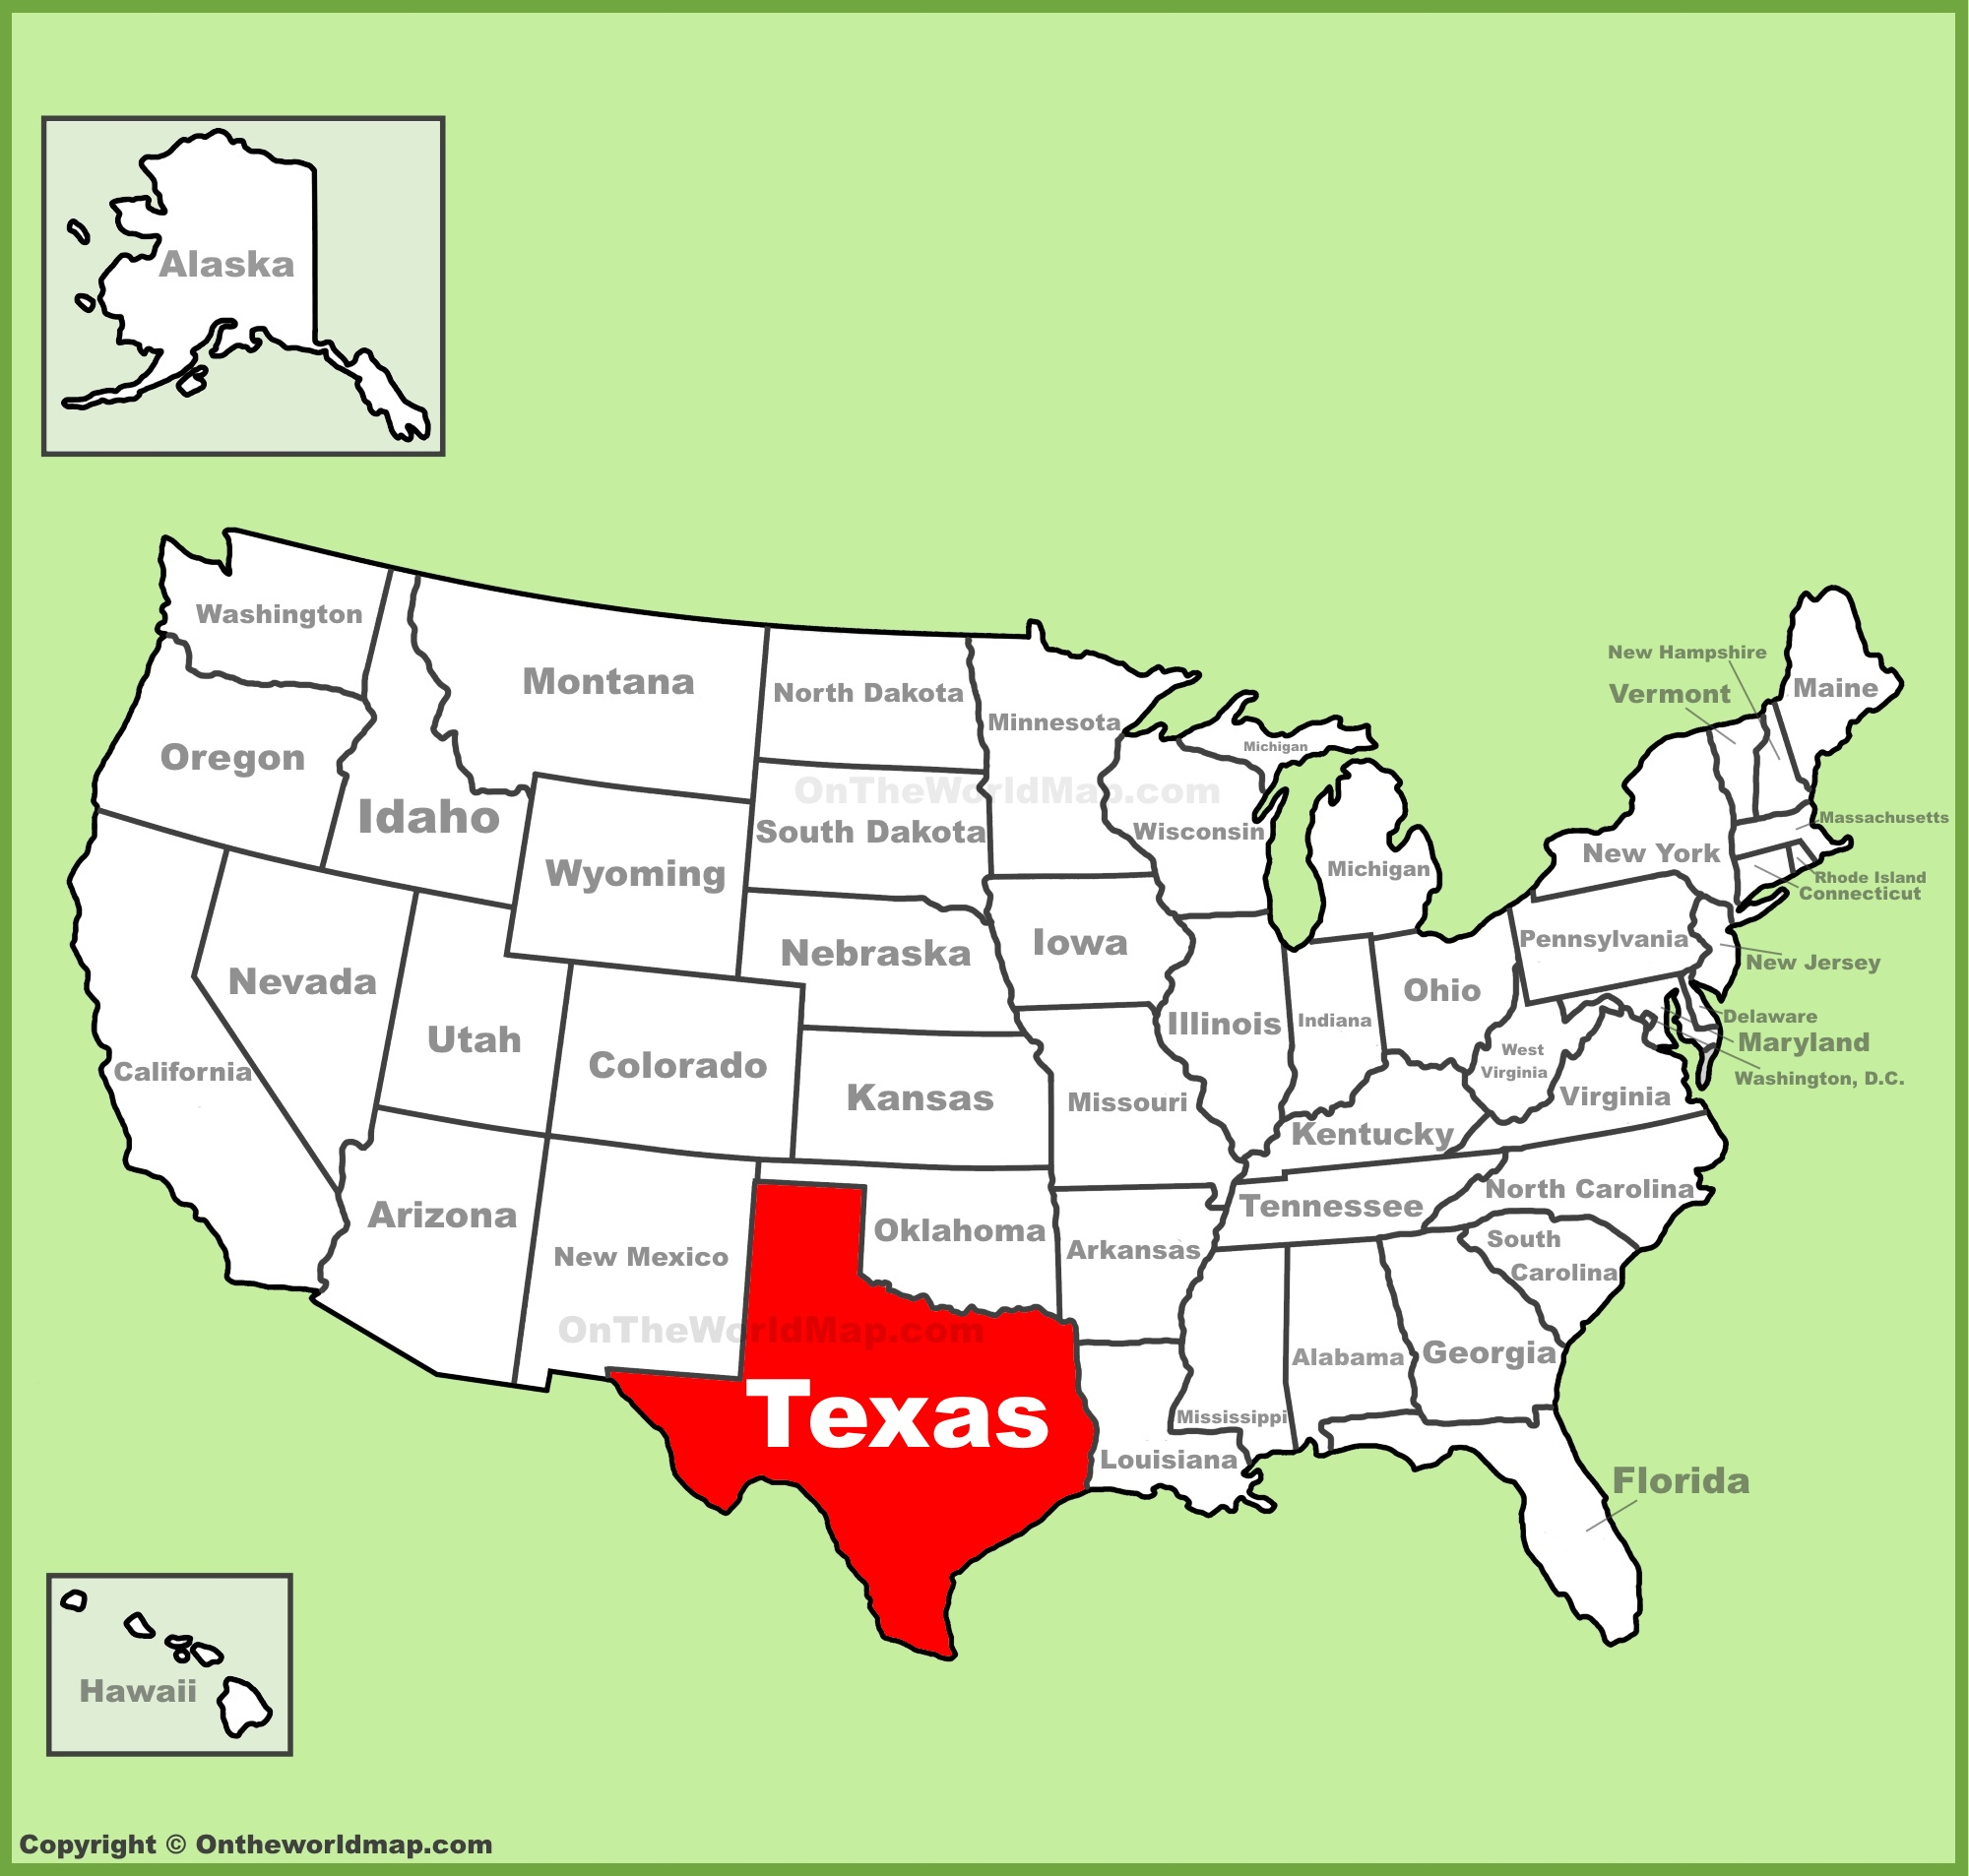 The United States of Texas? Map Shows Texas Divided Into 9 States